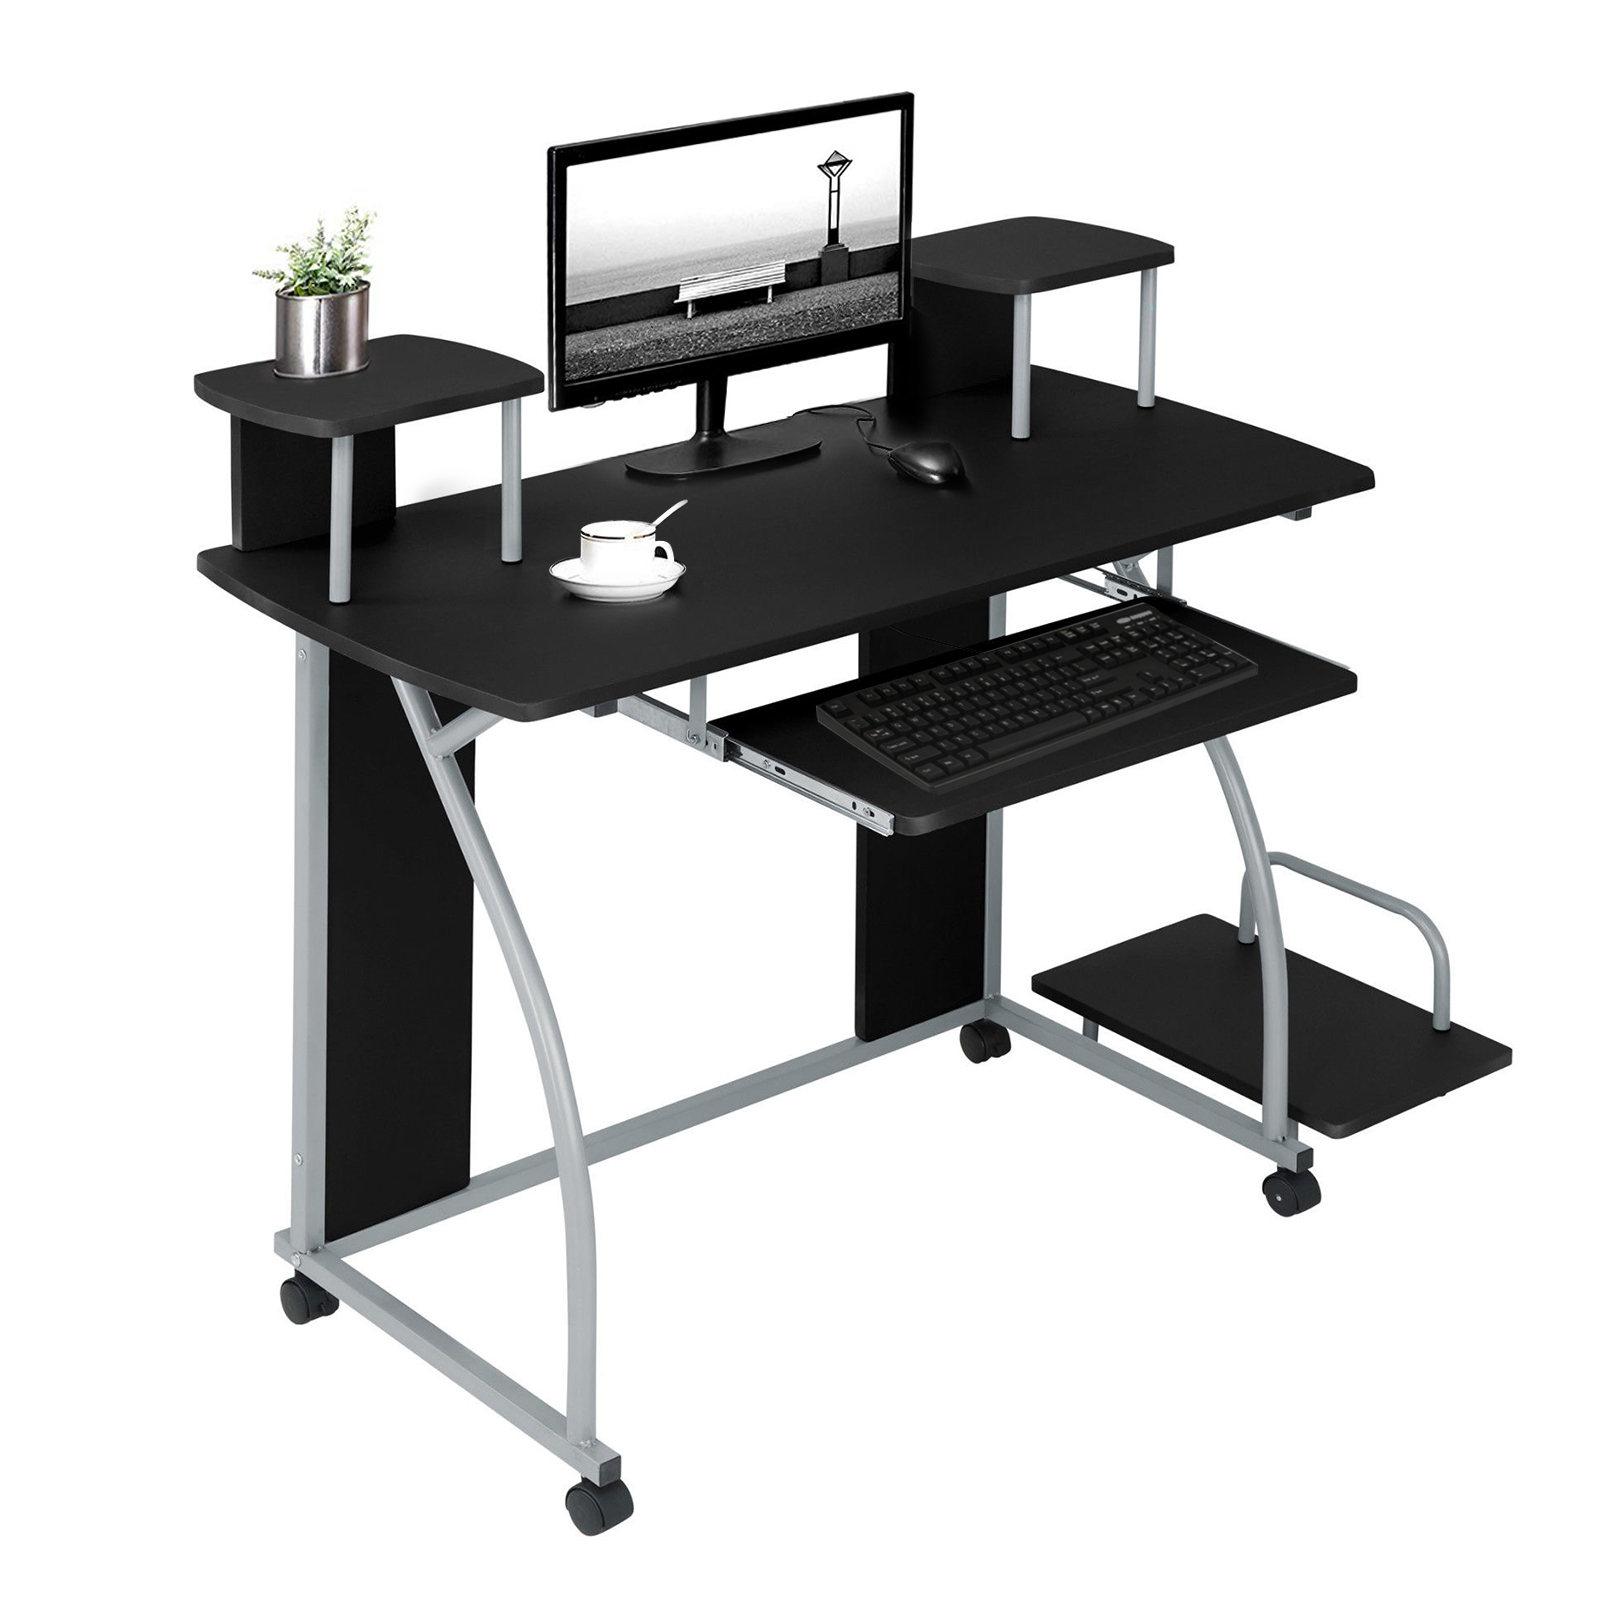 Details about Small Black Computer Desk with Sliding Keyboard Tray Gaming  Workstation Table